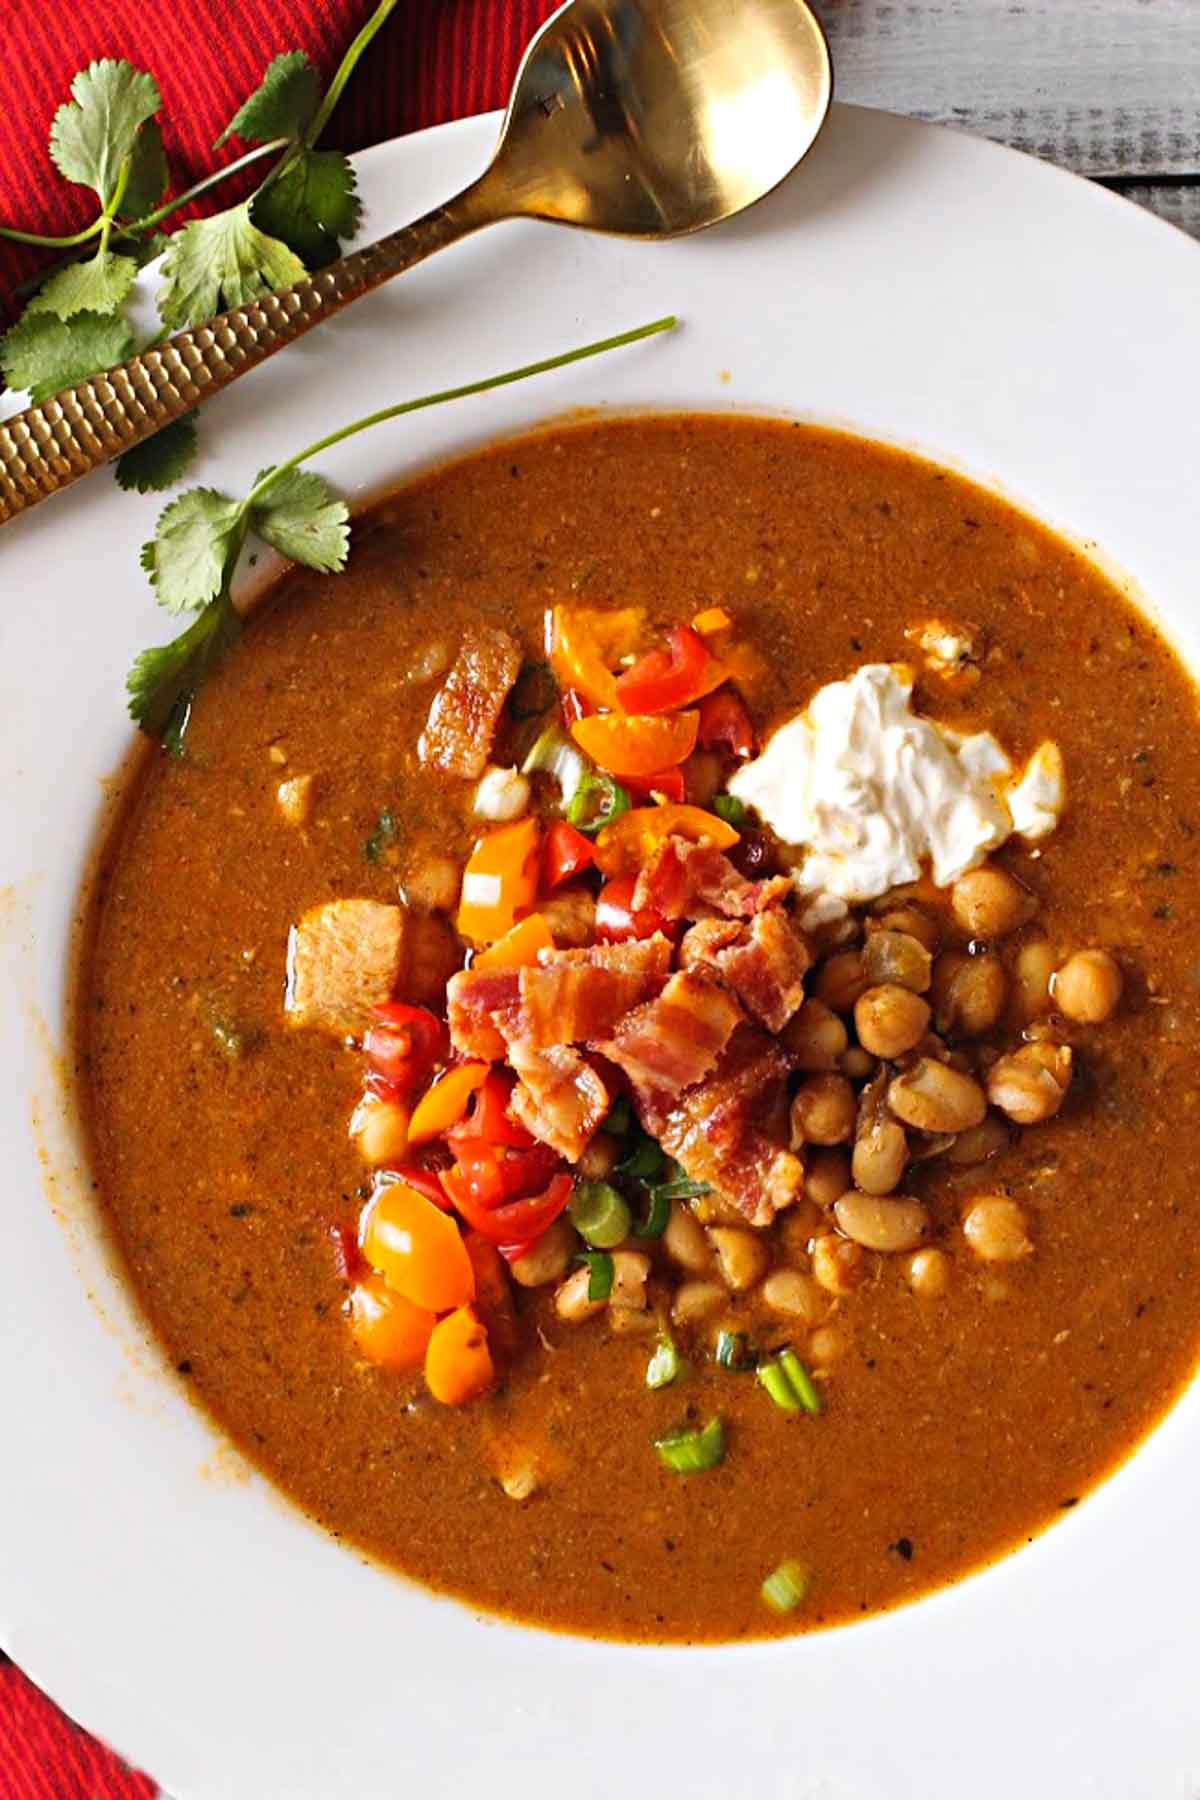 Chickpea chili with white beans and chicken